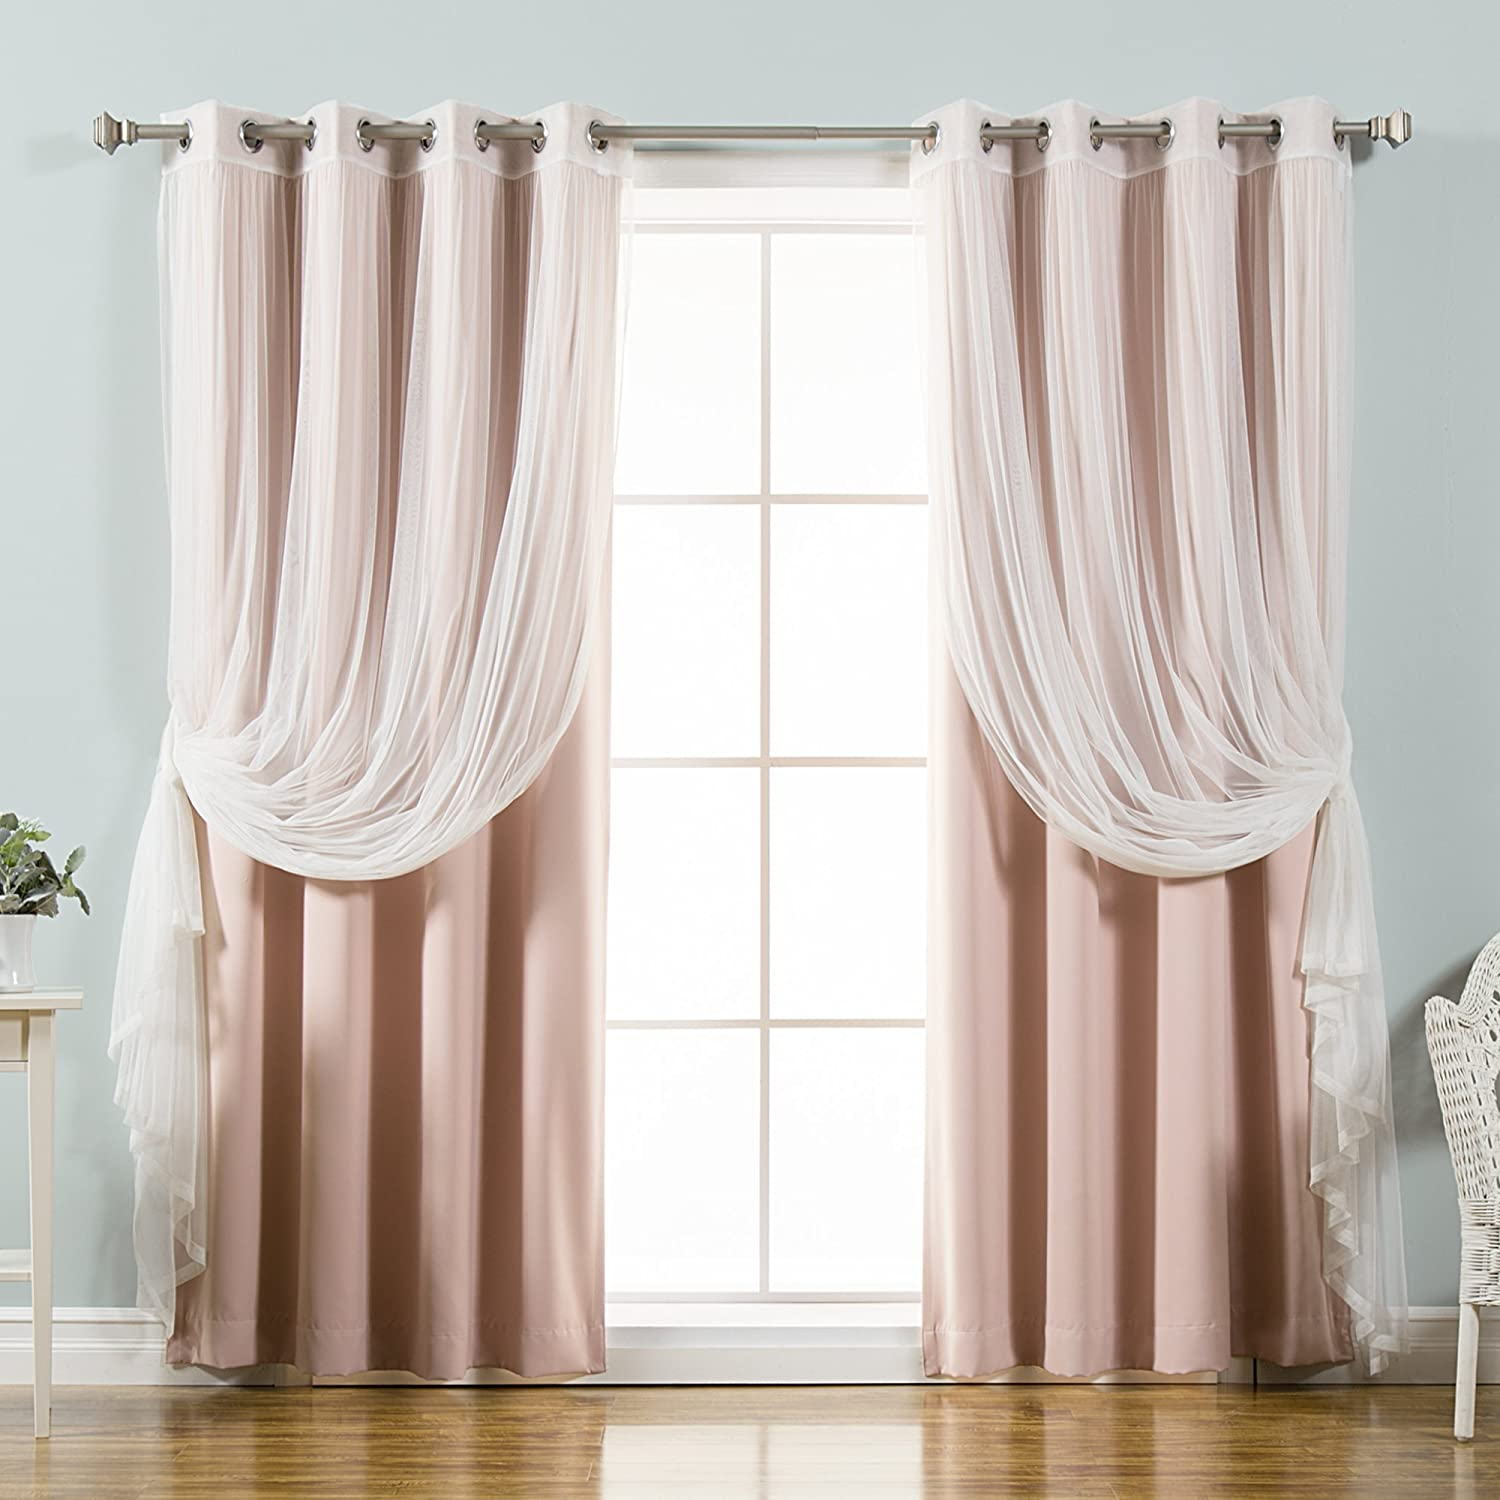 "Best Home Fashion uMIXm Mix and Match Tulle Sheer Lace and Blackout 4 Piece Curtain Set – Stainless Steel Nickel Grommet Top – Dustypink – 52"" W x 96"" L – (2 Curtains and 2 Sheer Curtains)"